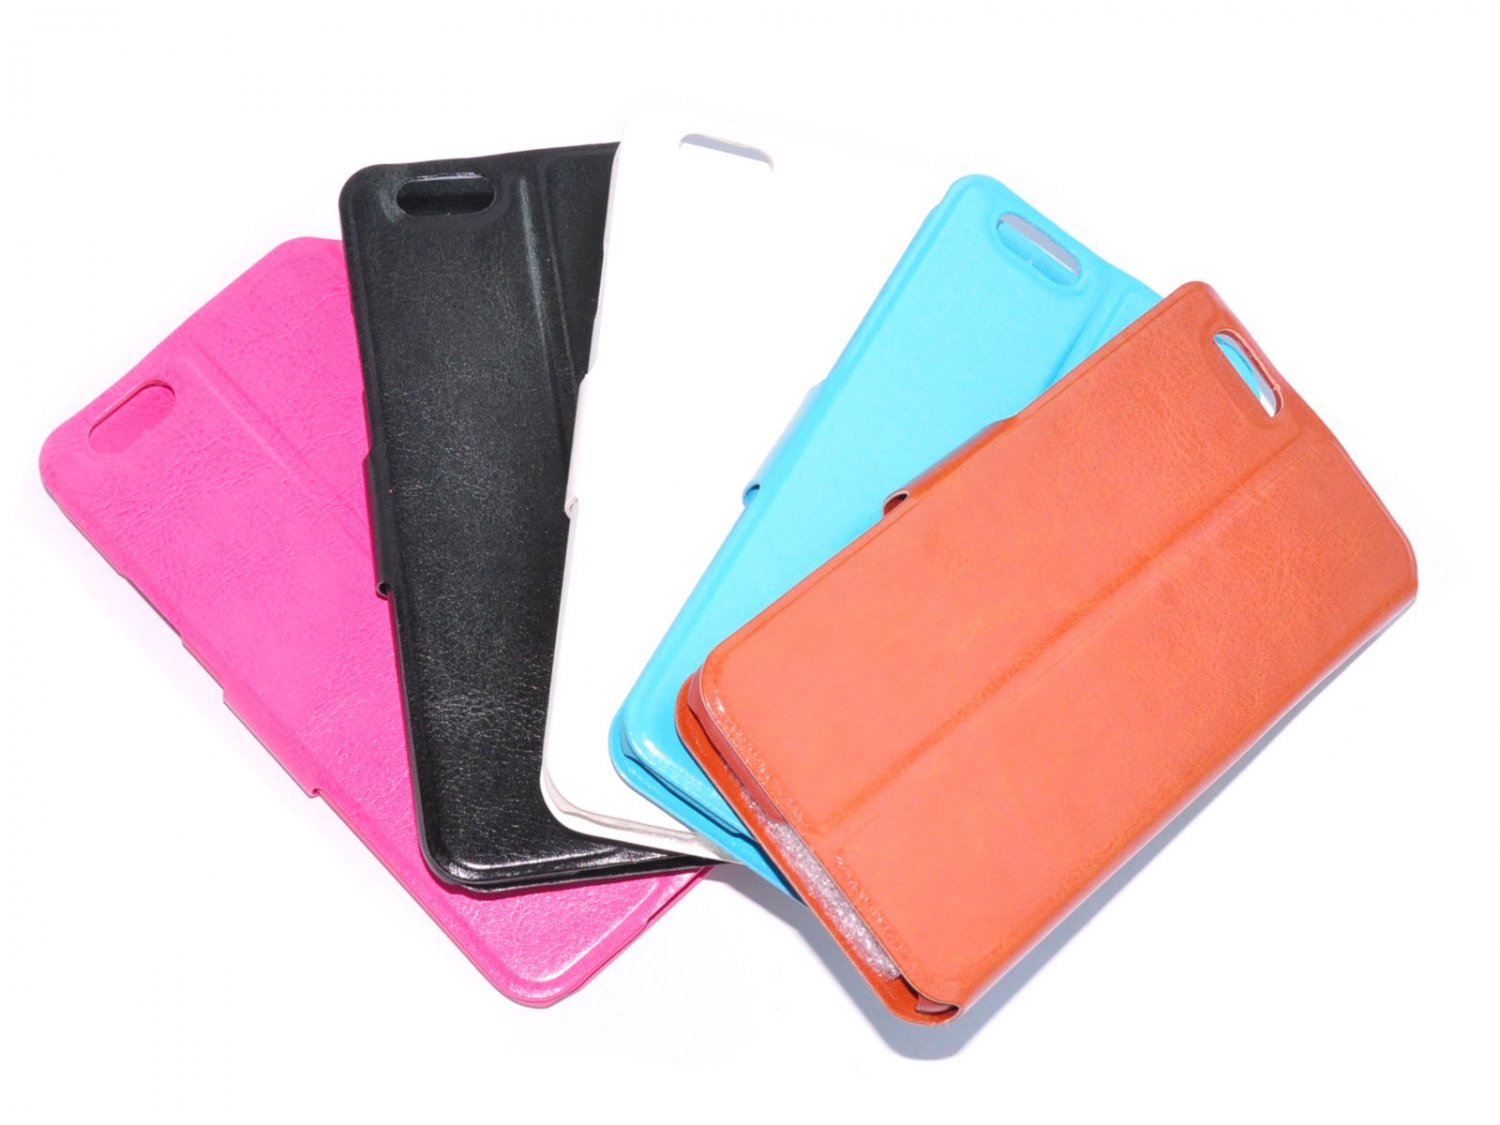 New Leather Durable Flip Pouch Case Cover For iPhone 6 4.7